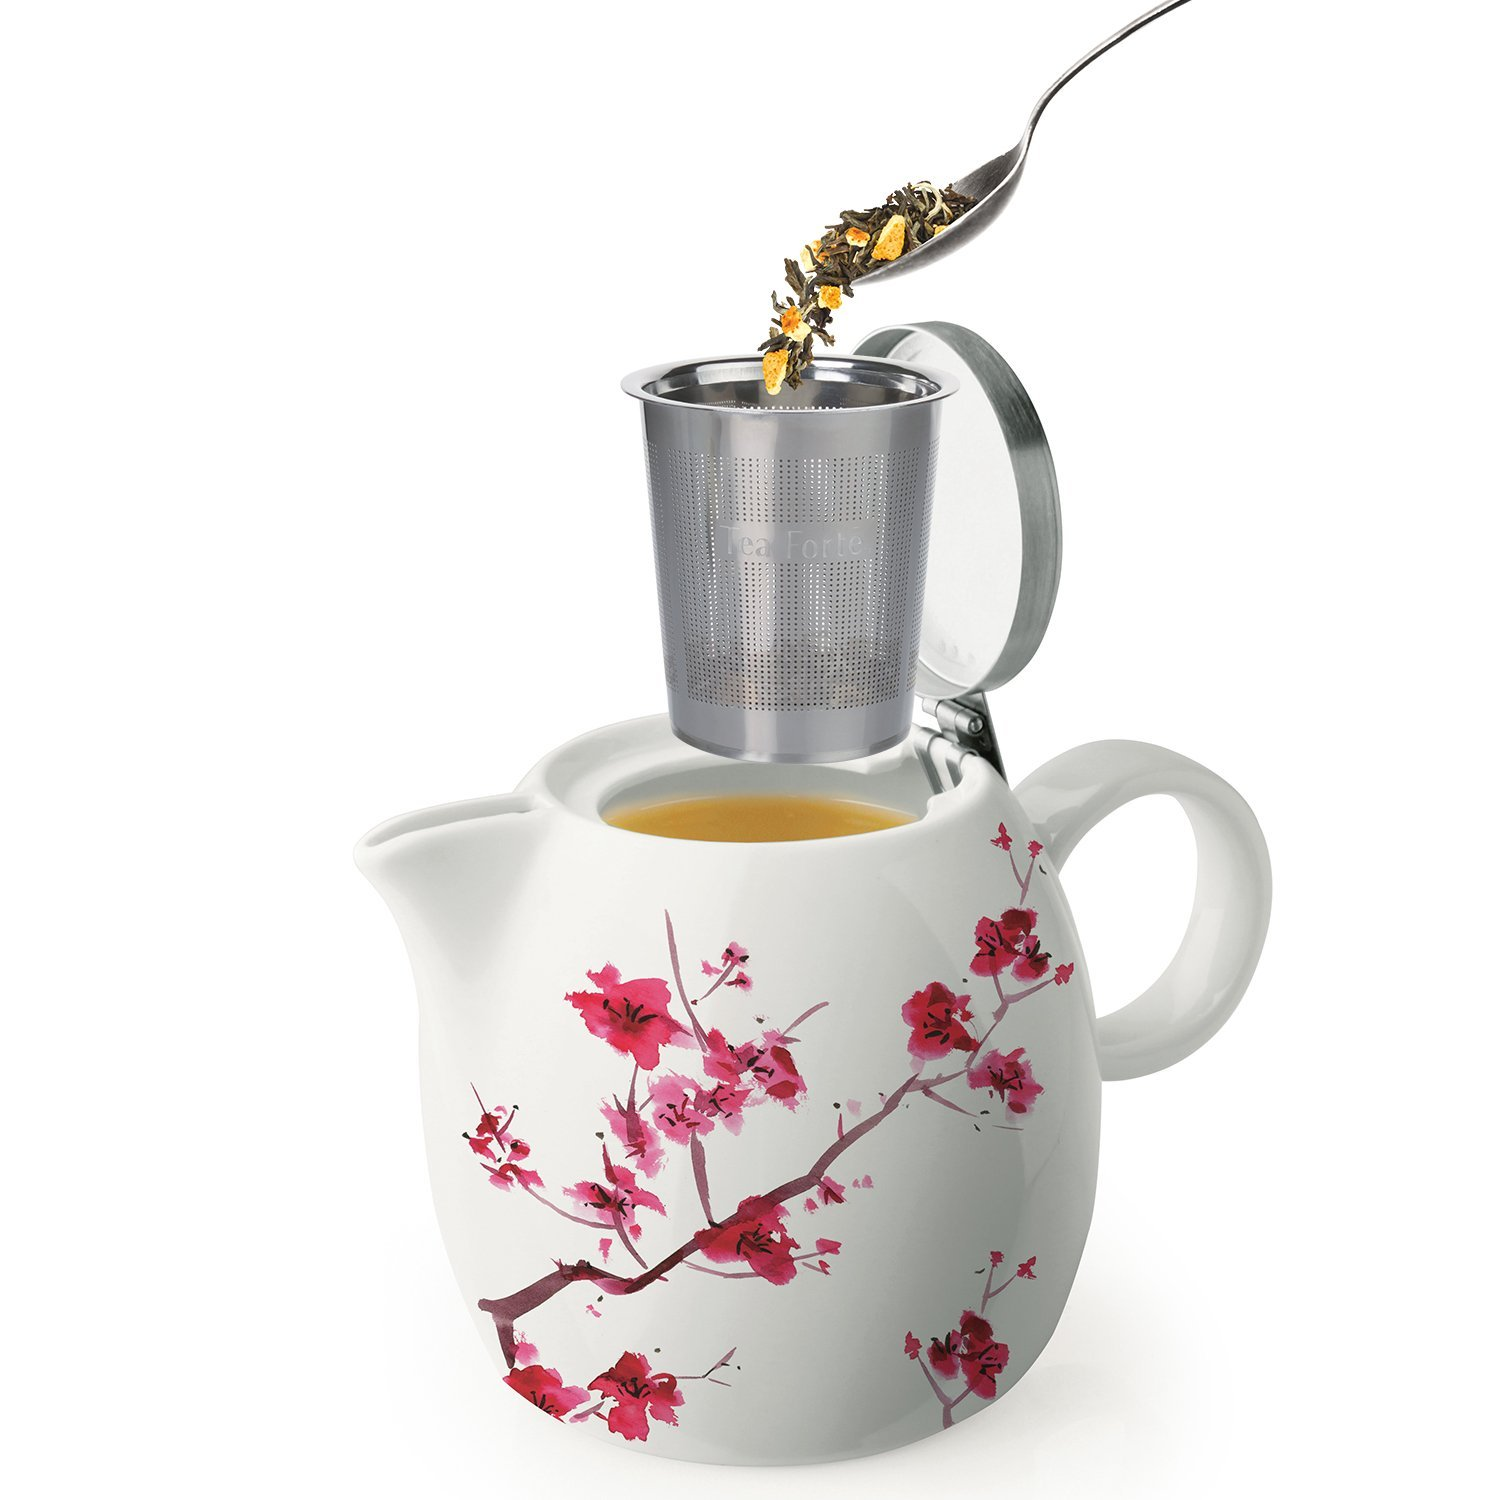 Ceramic Teapot With Infuser Tea Forte Pugg 24oz Ceramic Teapot With Improved Stainless